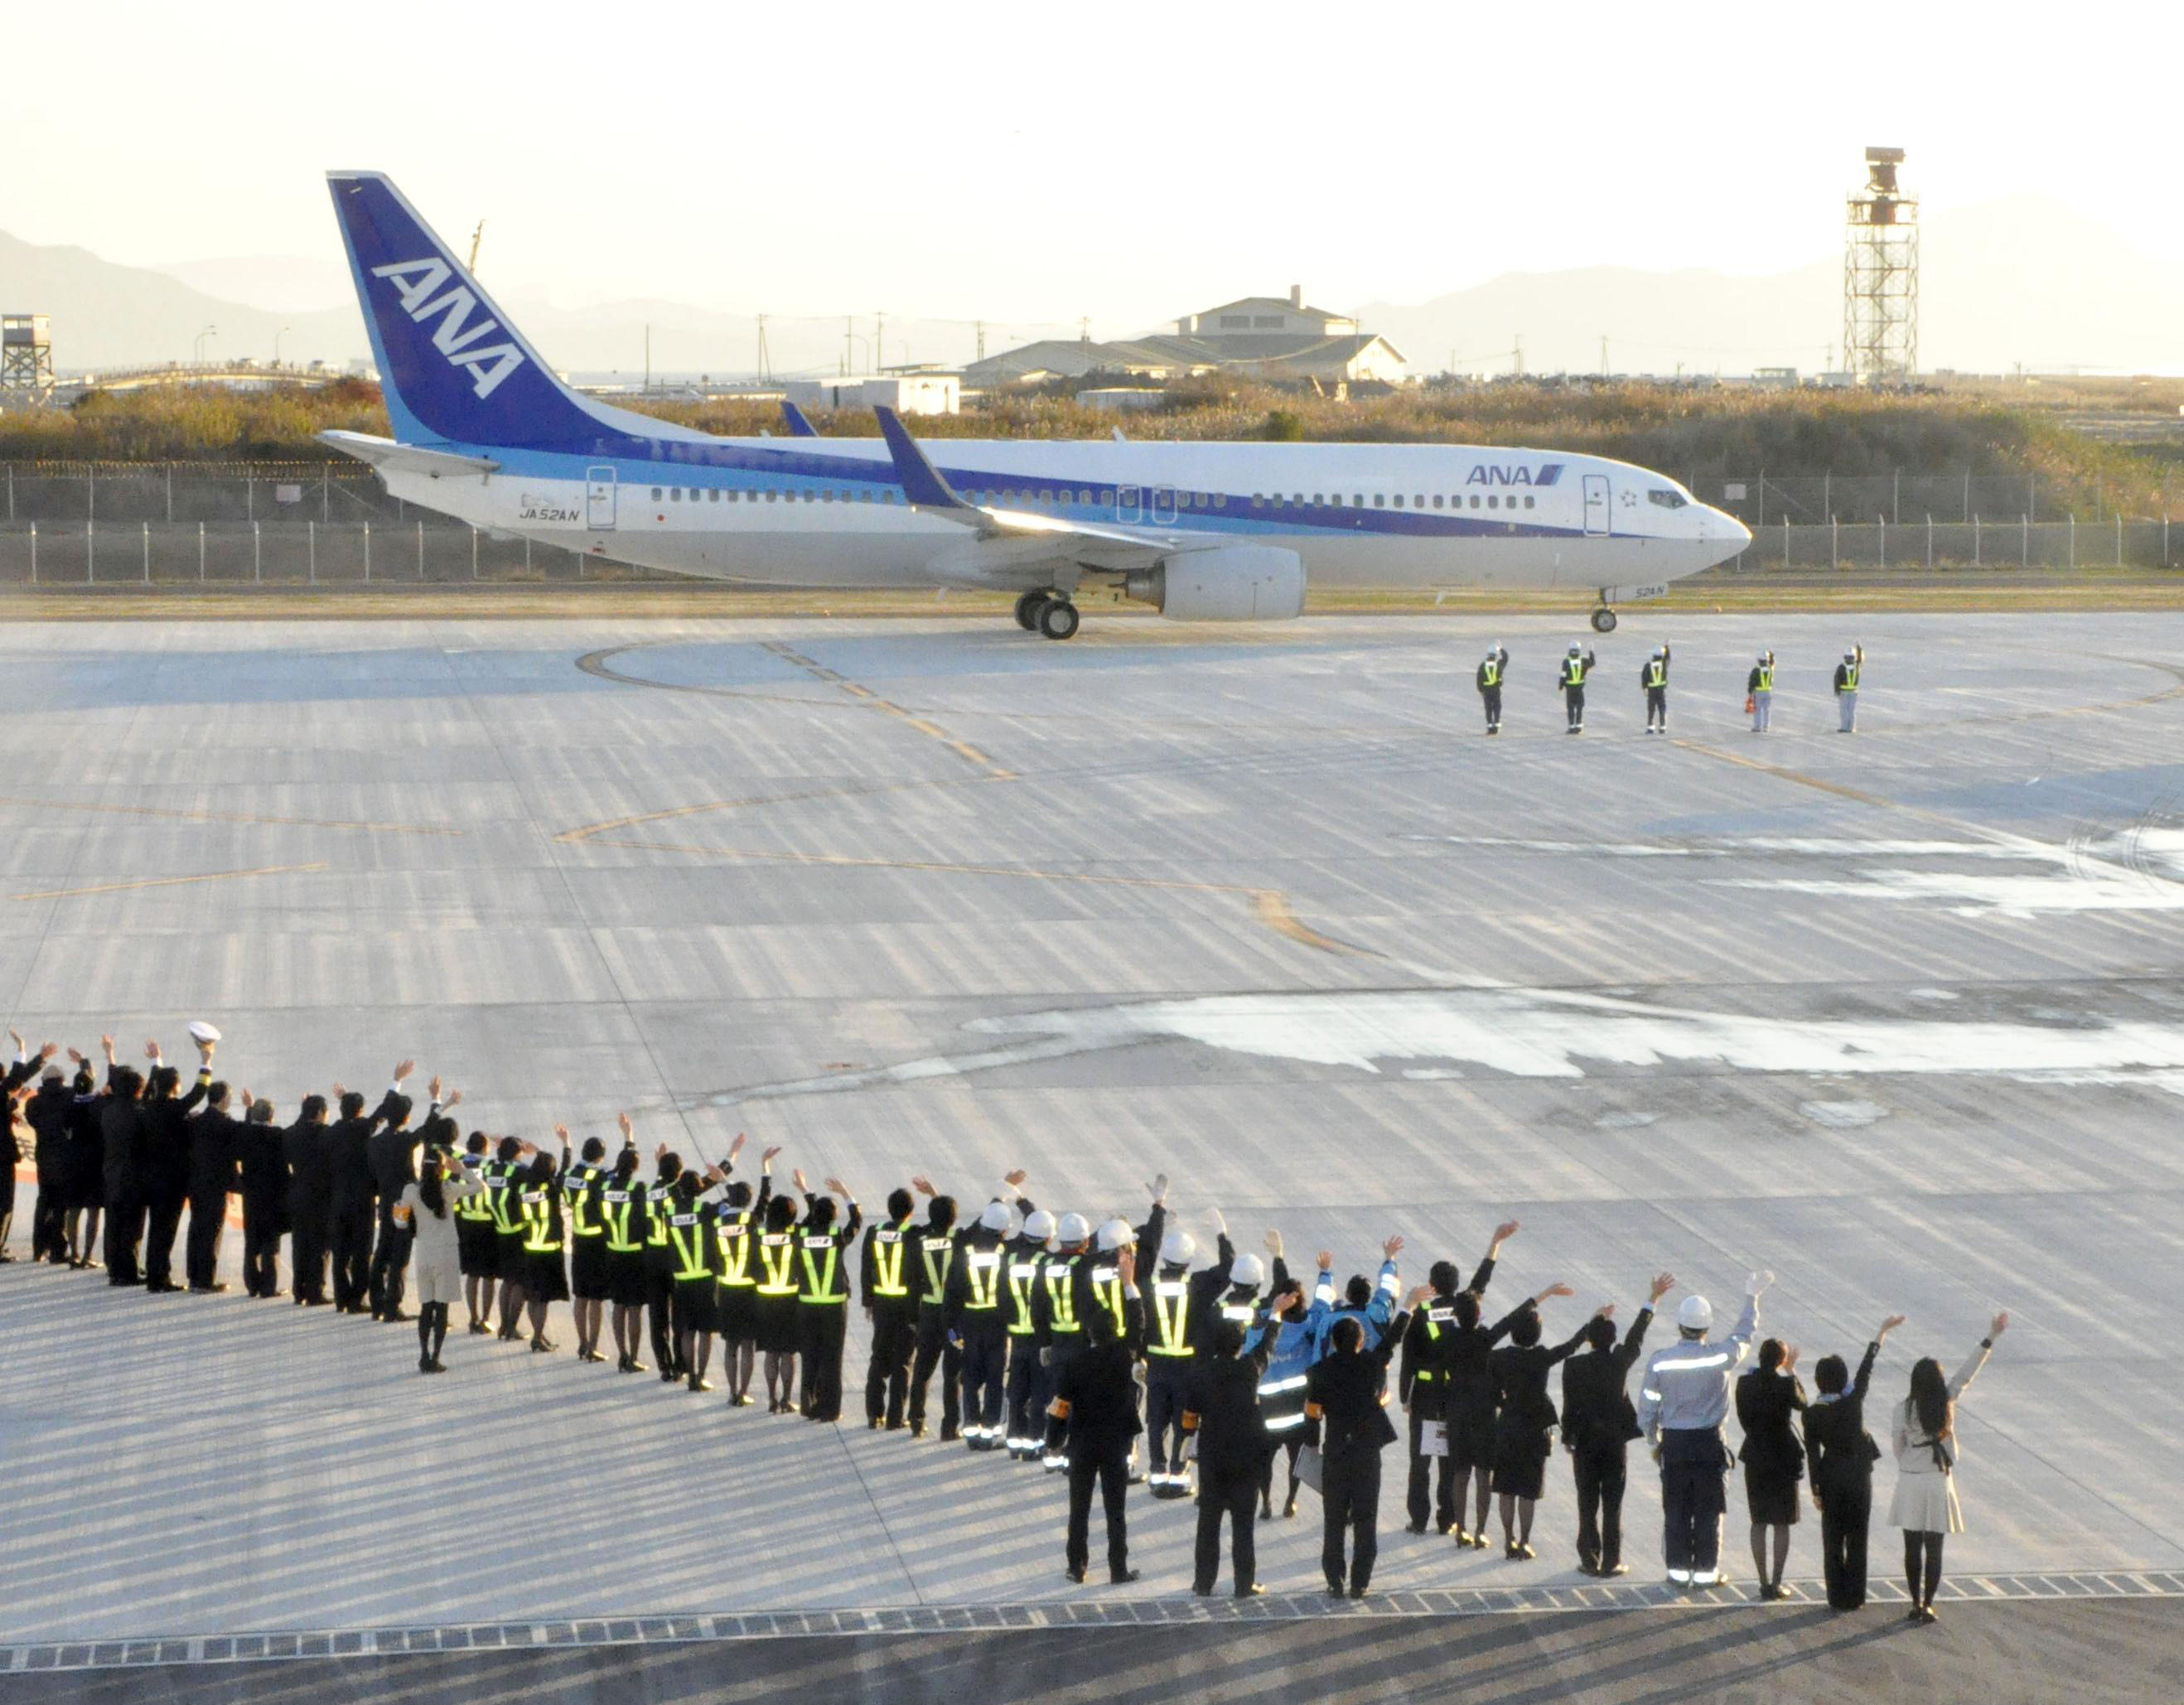 Long time coming: Airline employees and staff at Iwakuni Kintaikyo Airport wave as the facility's first commercial flight in 48 years prepares for takeoff Thursday. | KYODO